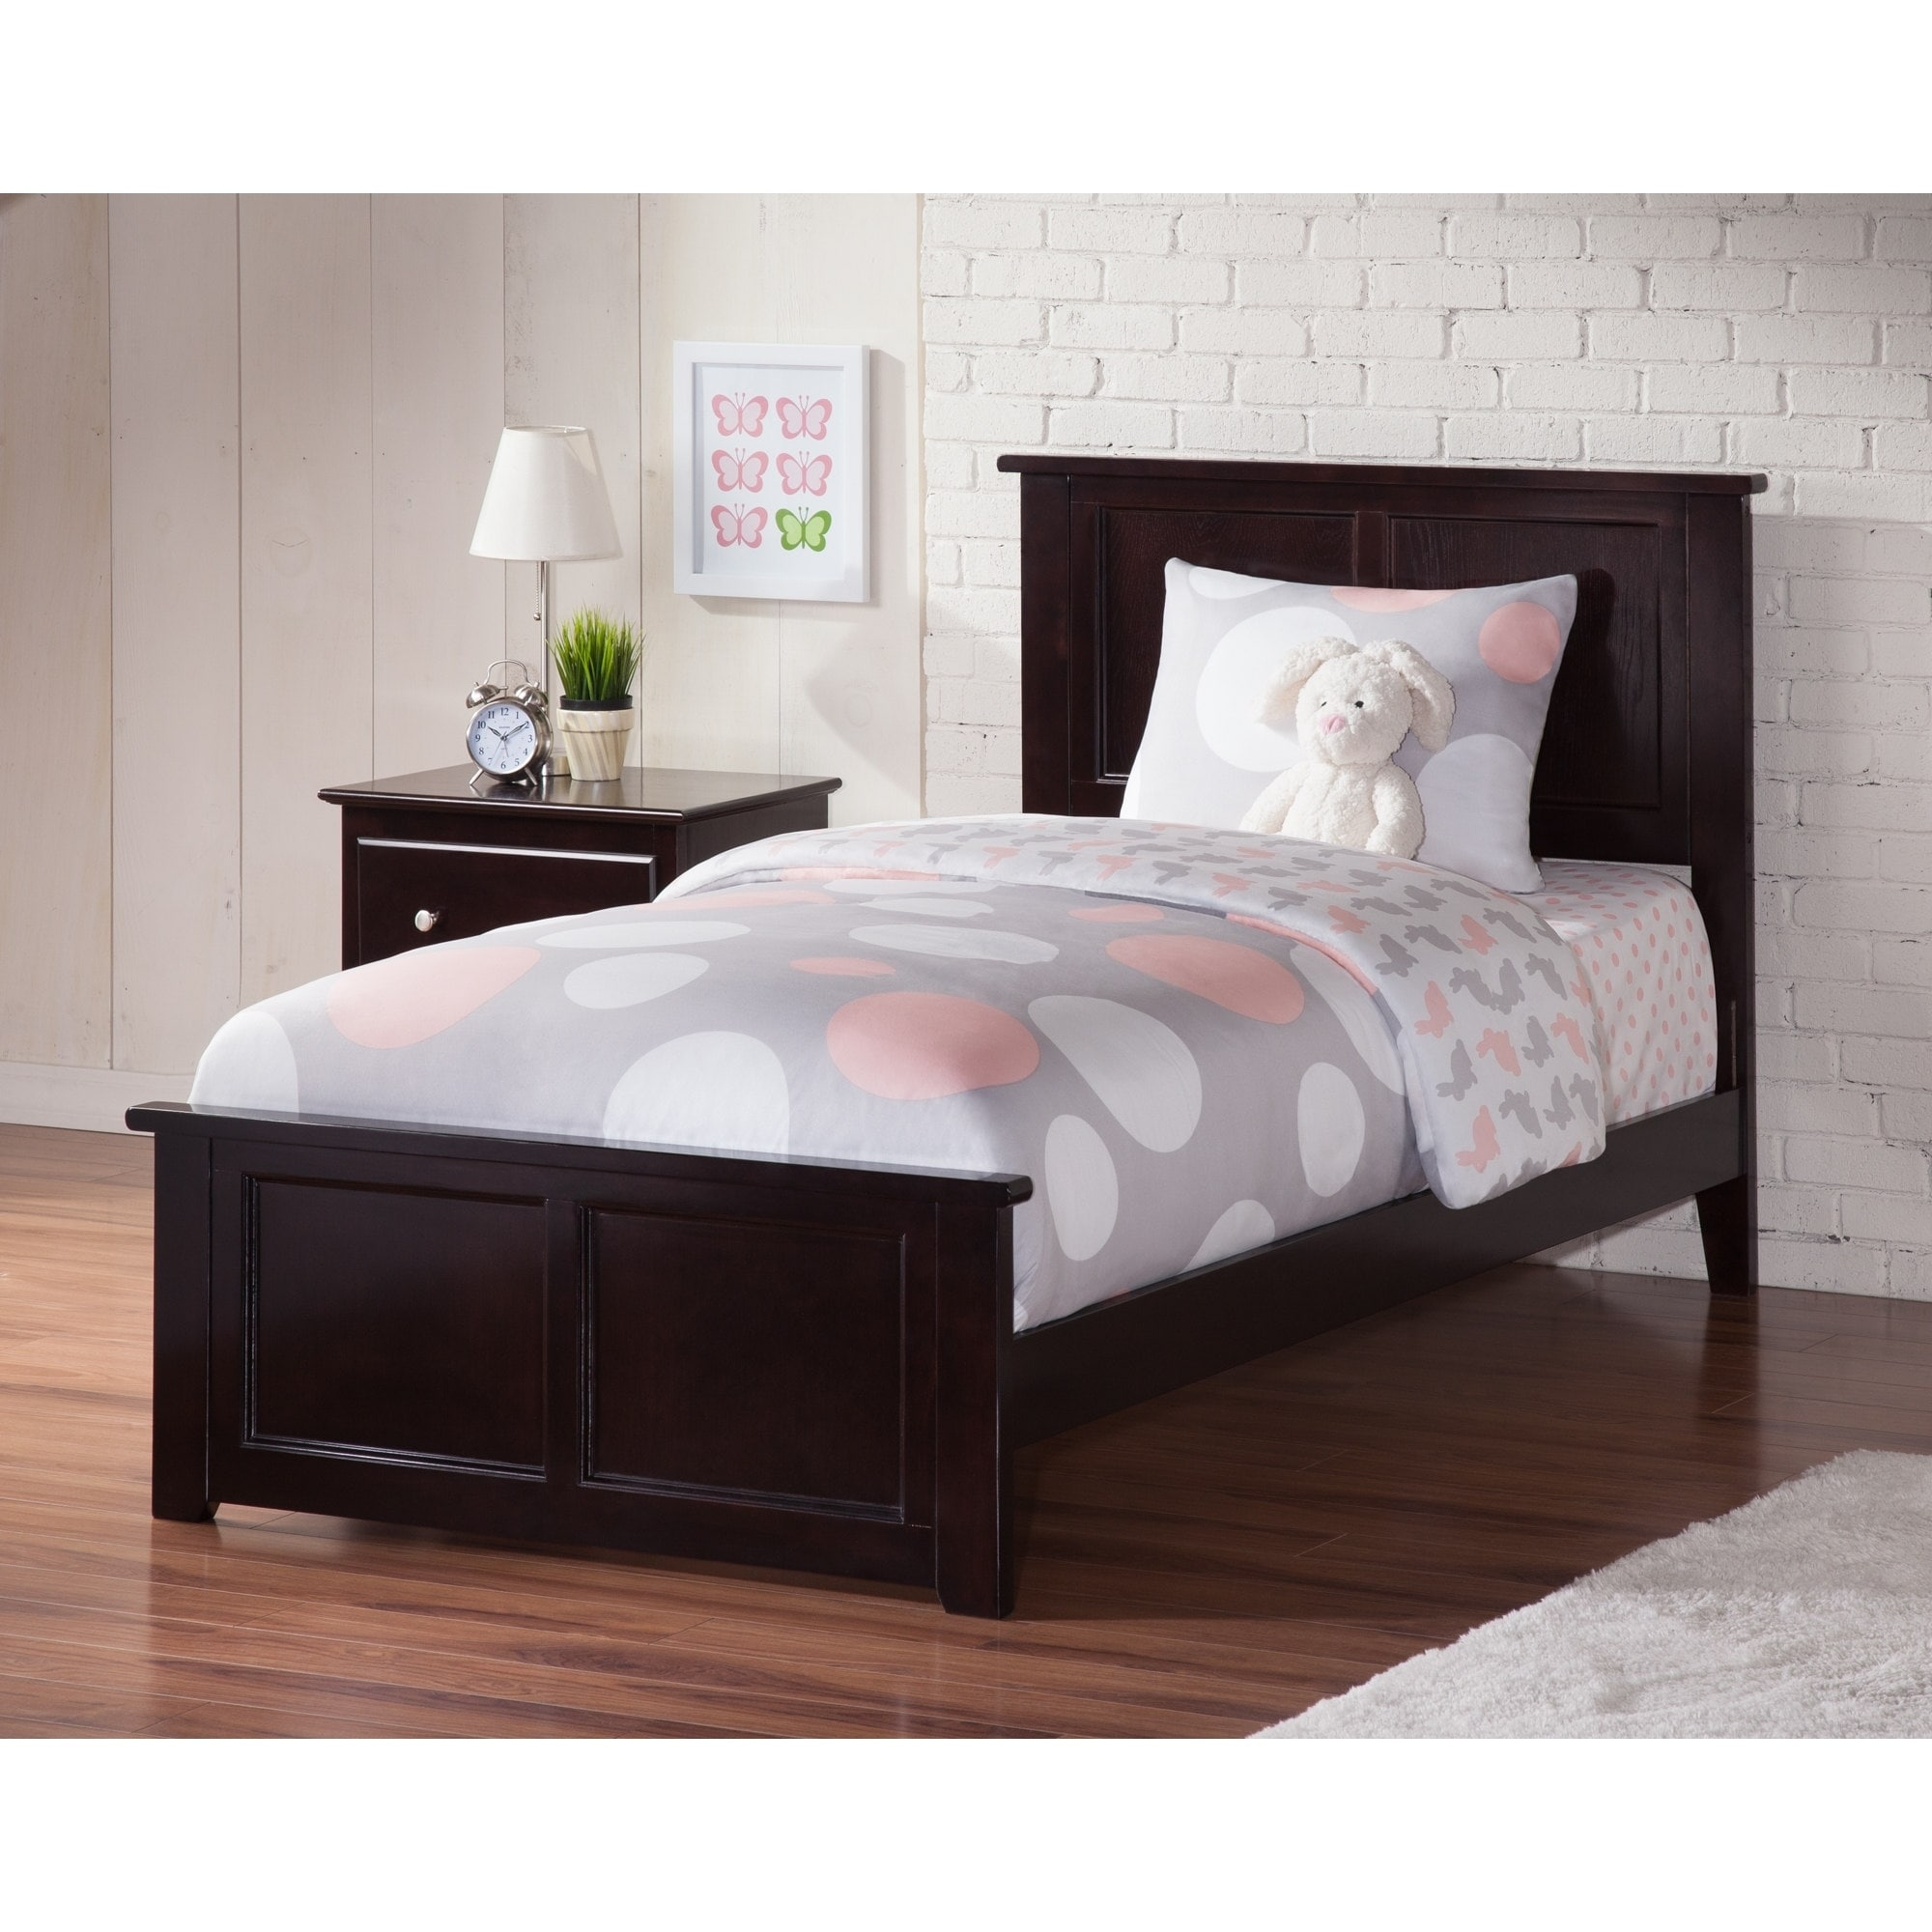 - Shop Atlantic Madison Espresso Twin XL Bed With Matching Footboard